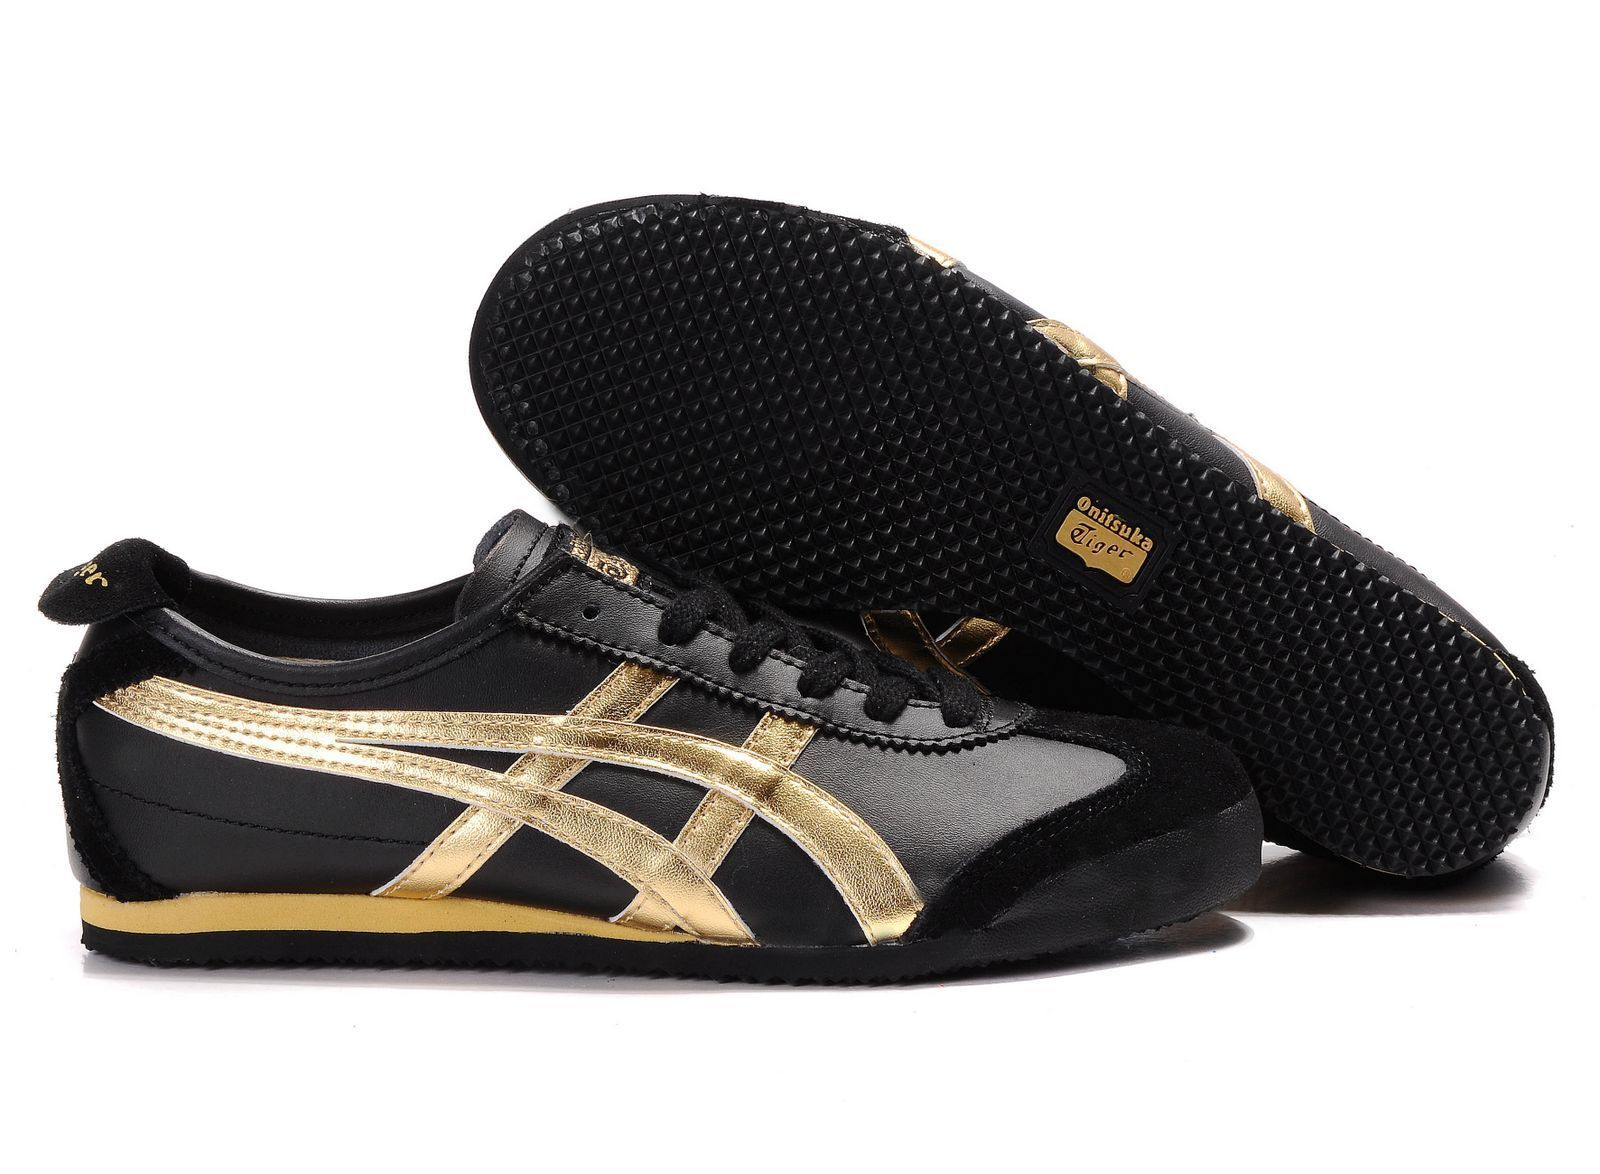 onitsuka tiger mexico 66 shoes price in india gold